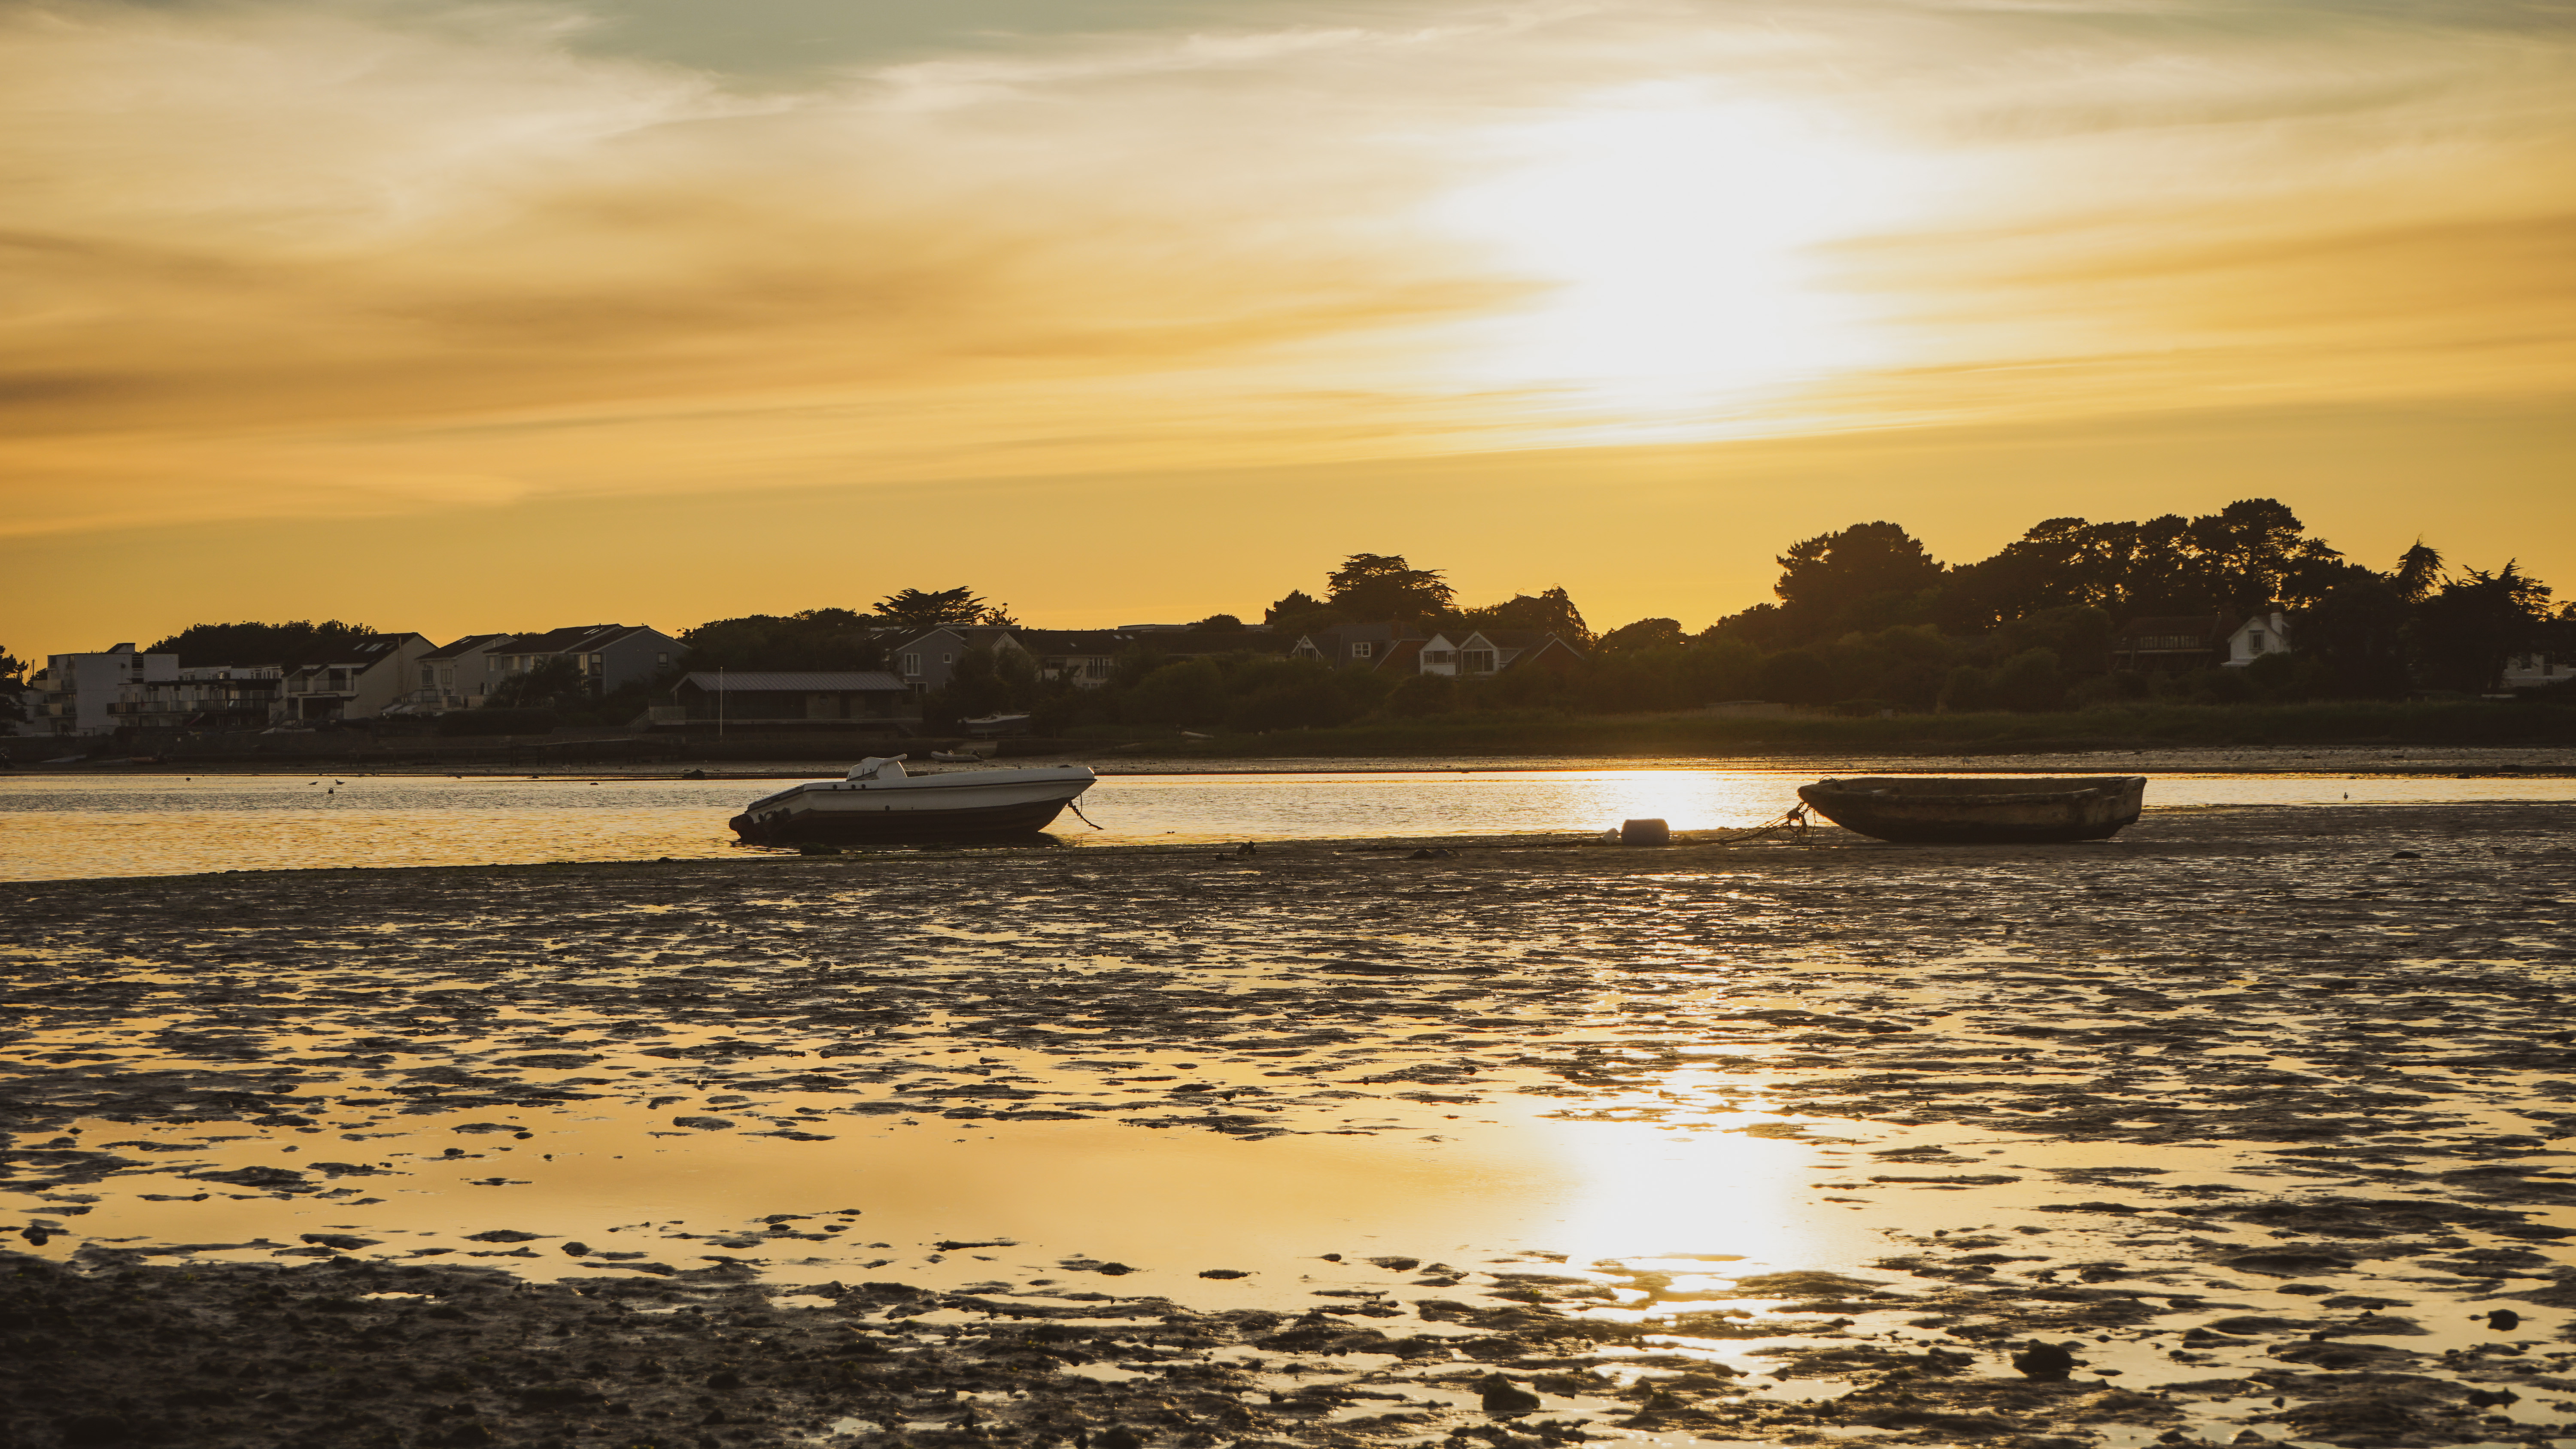 Tranquil sunset at Mudeford quay with tow boats moored on the sea bed due to low tide